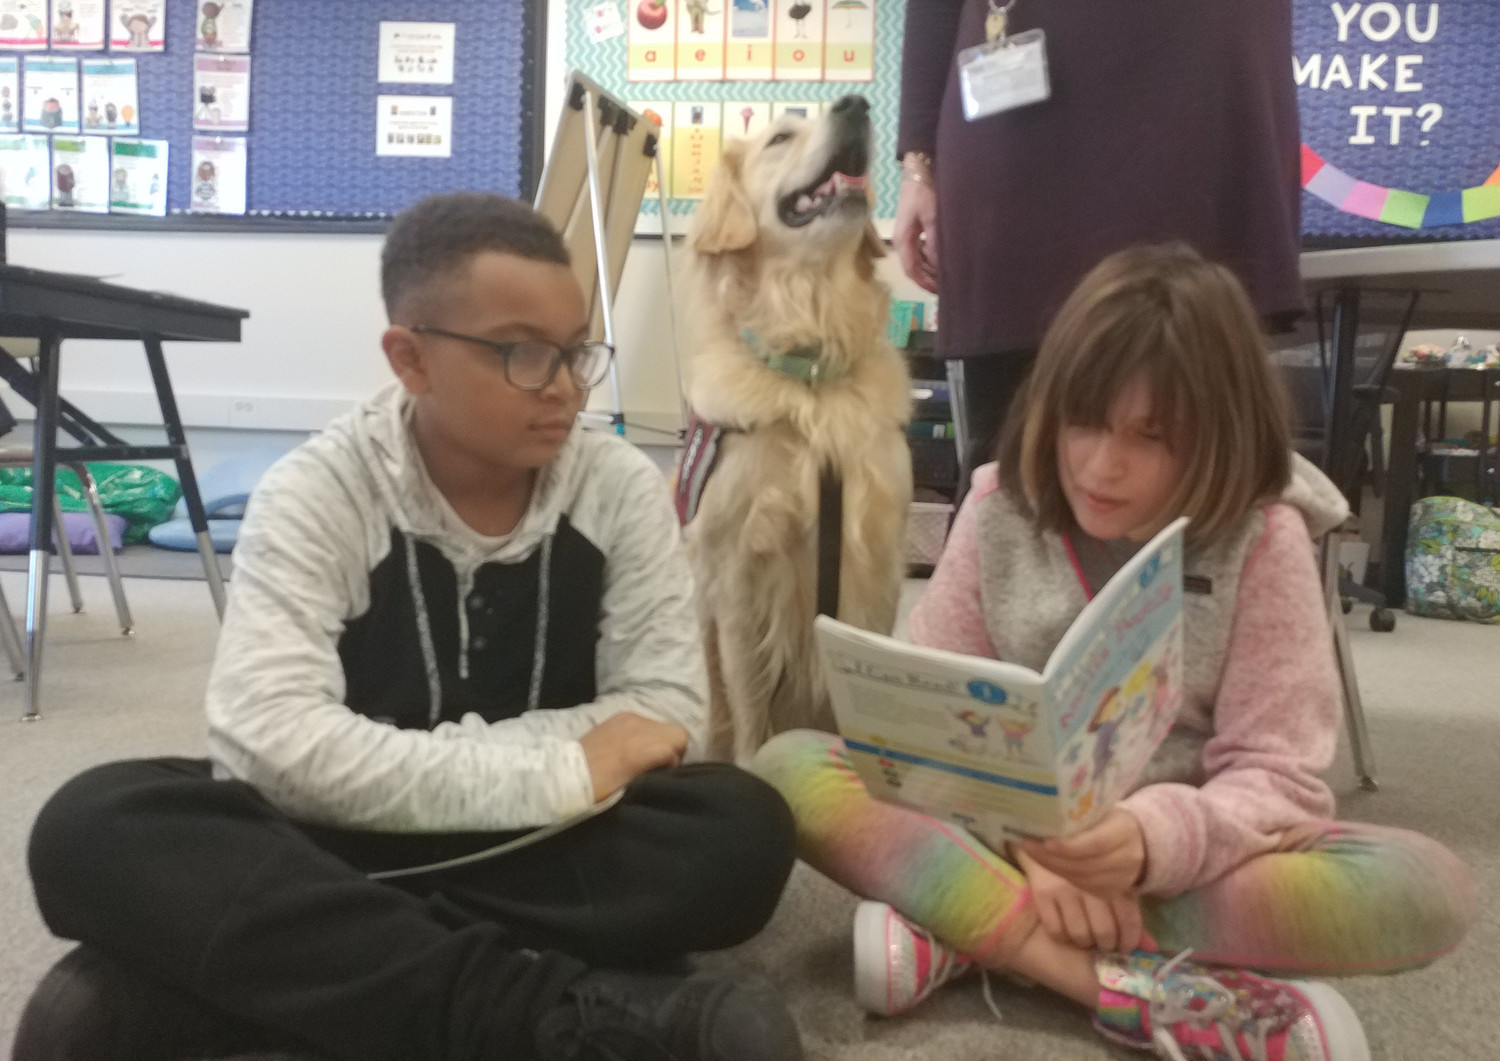 Students Brittany Garner and Nisier Franklin participate in a reading activity at Kunkel Elementary as Mia the district's therapy dog listens to Garner read.